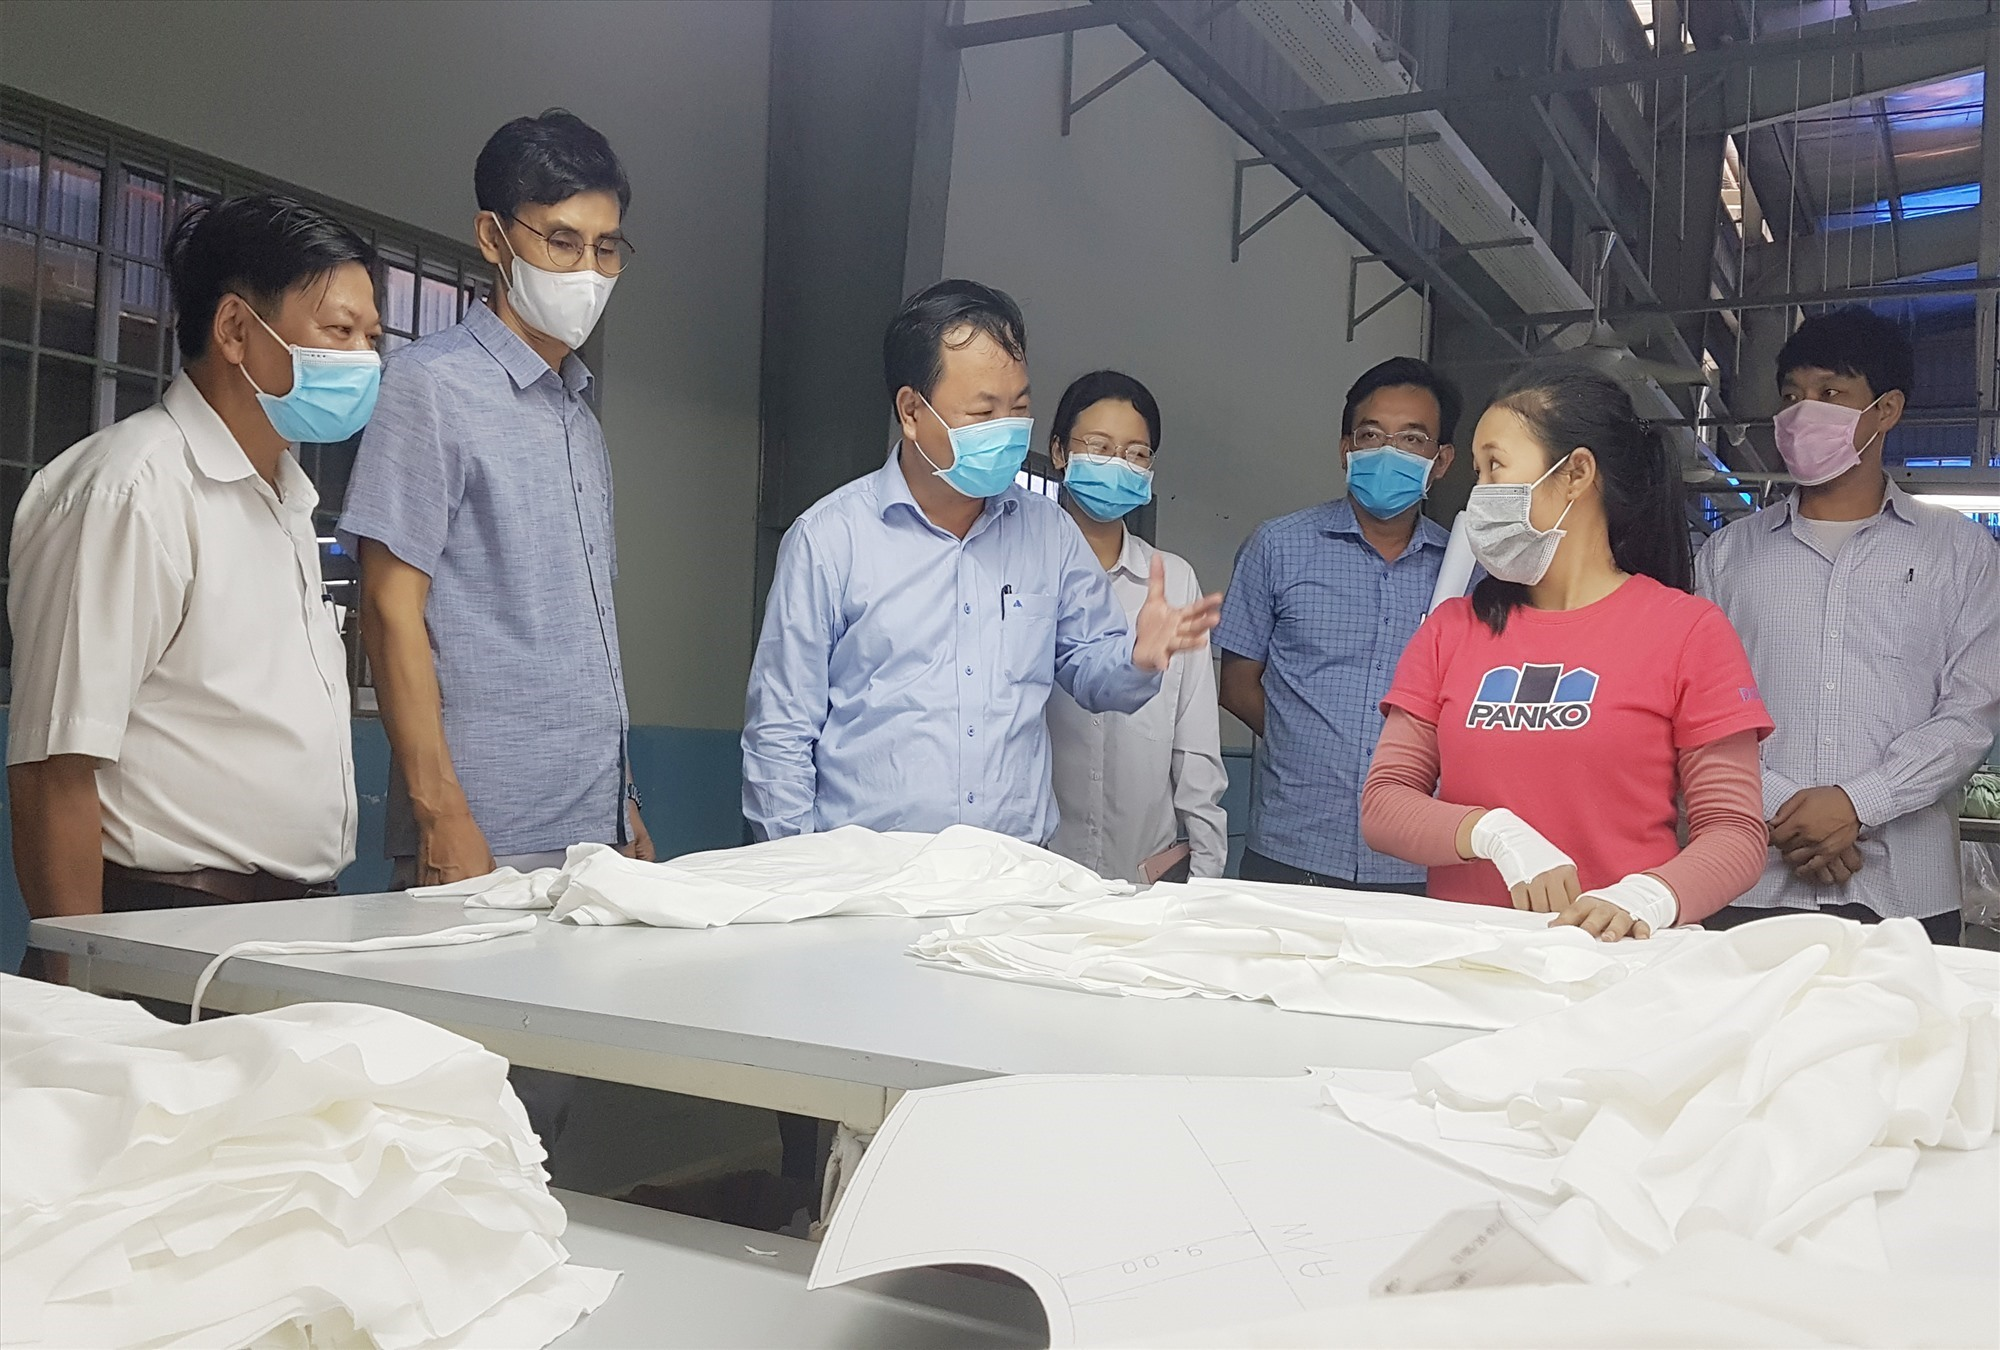 Vice Chairman of the Quang Nam provincial People's Committee Hong Quang inspects the prevention of the Covid-19 epidemic at an enterprise.